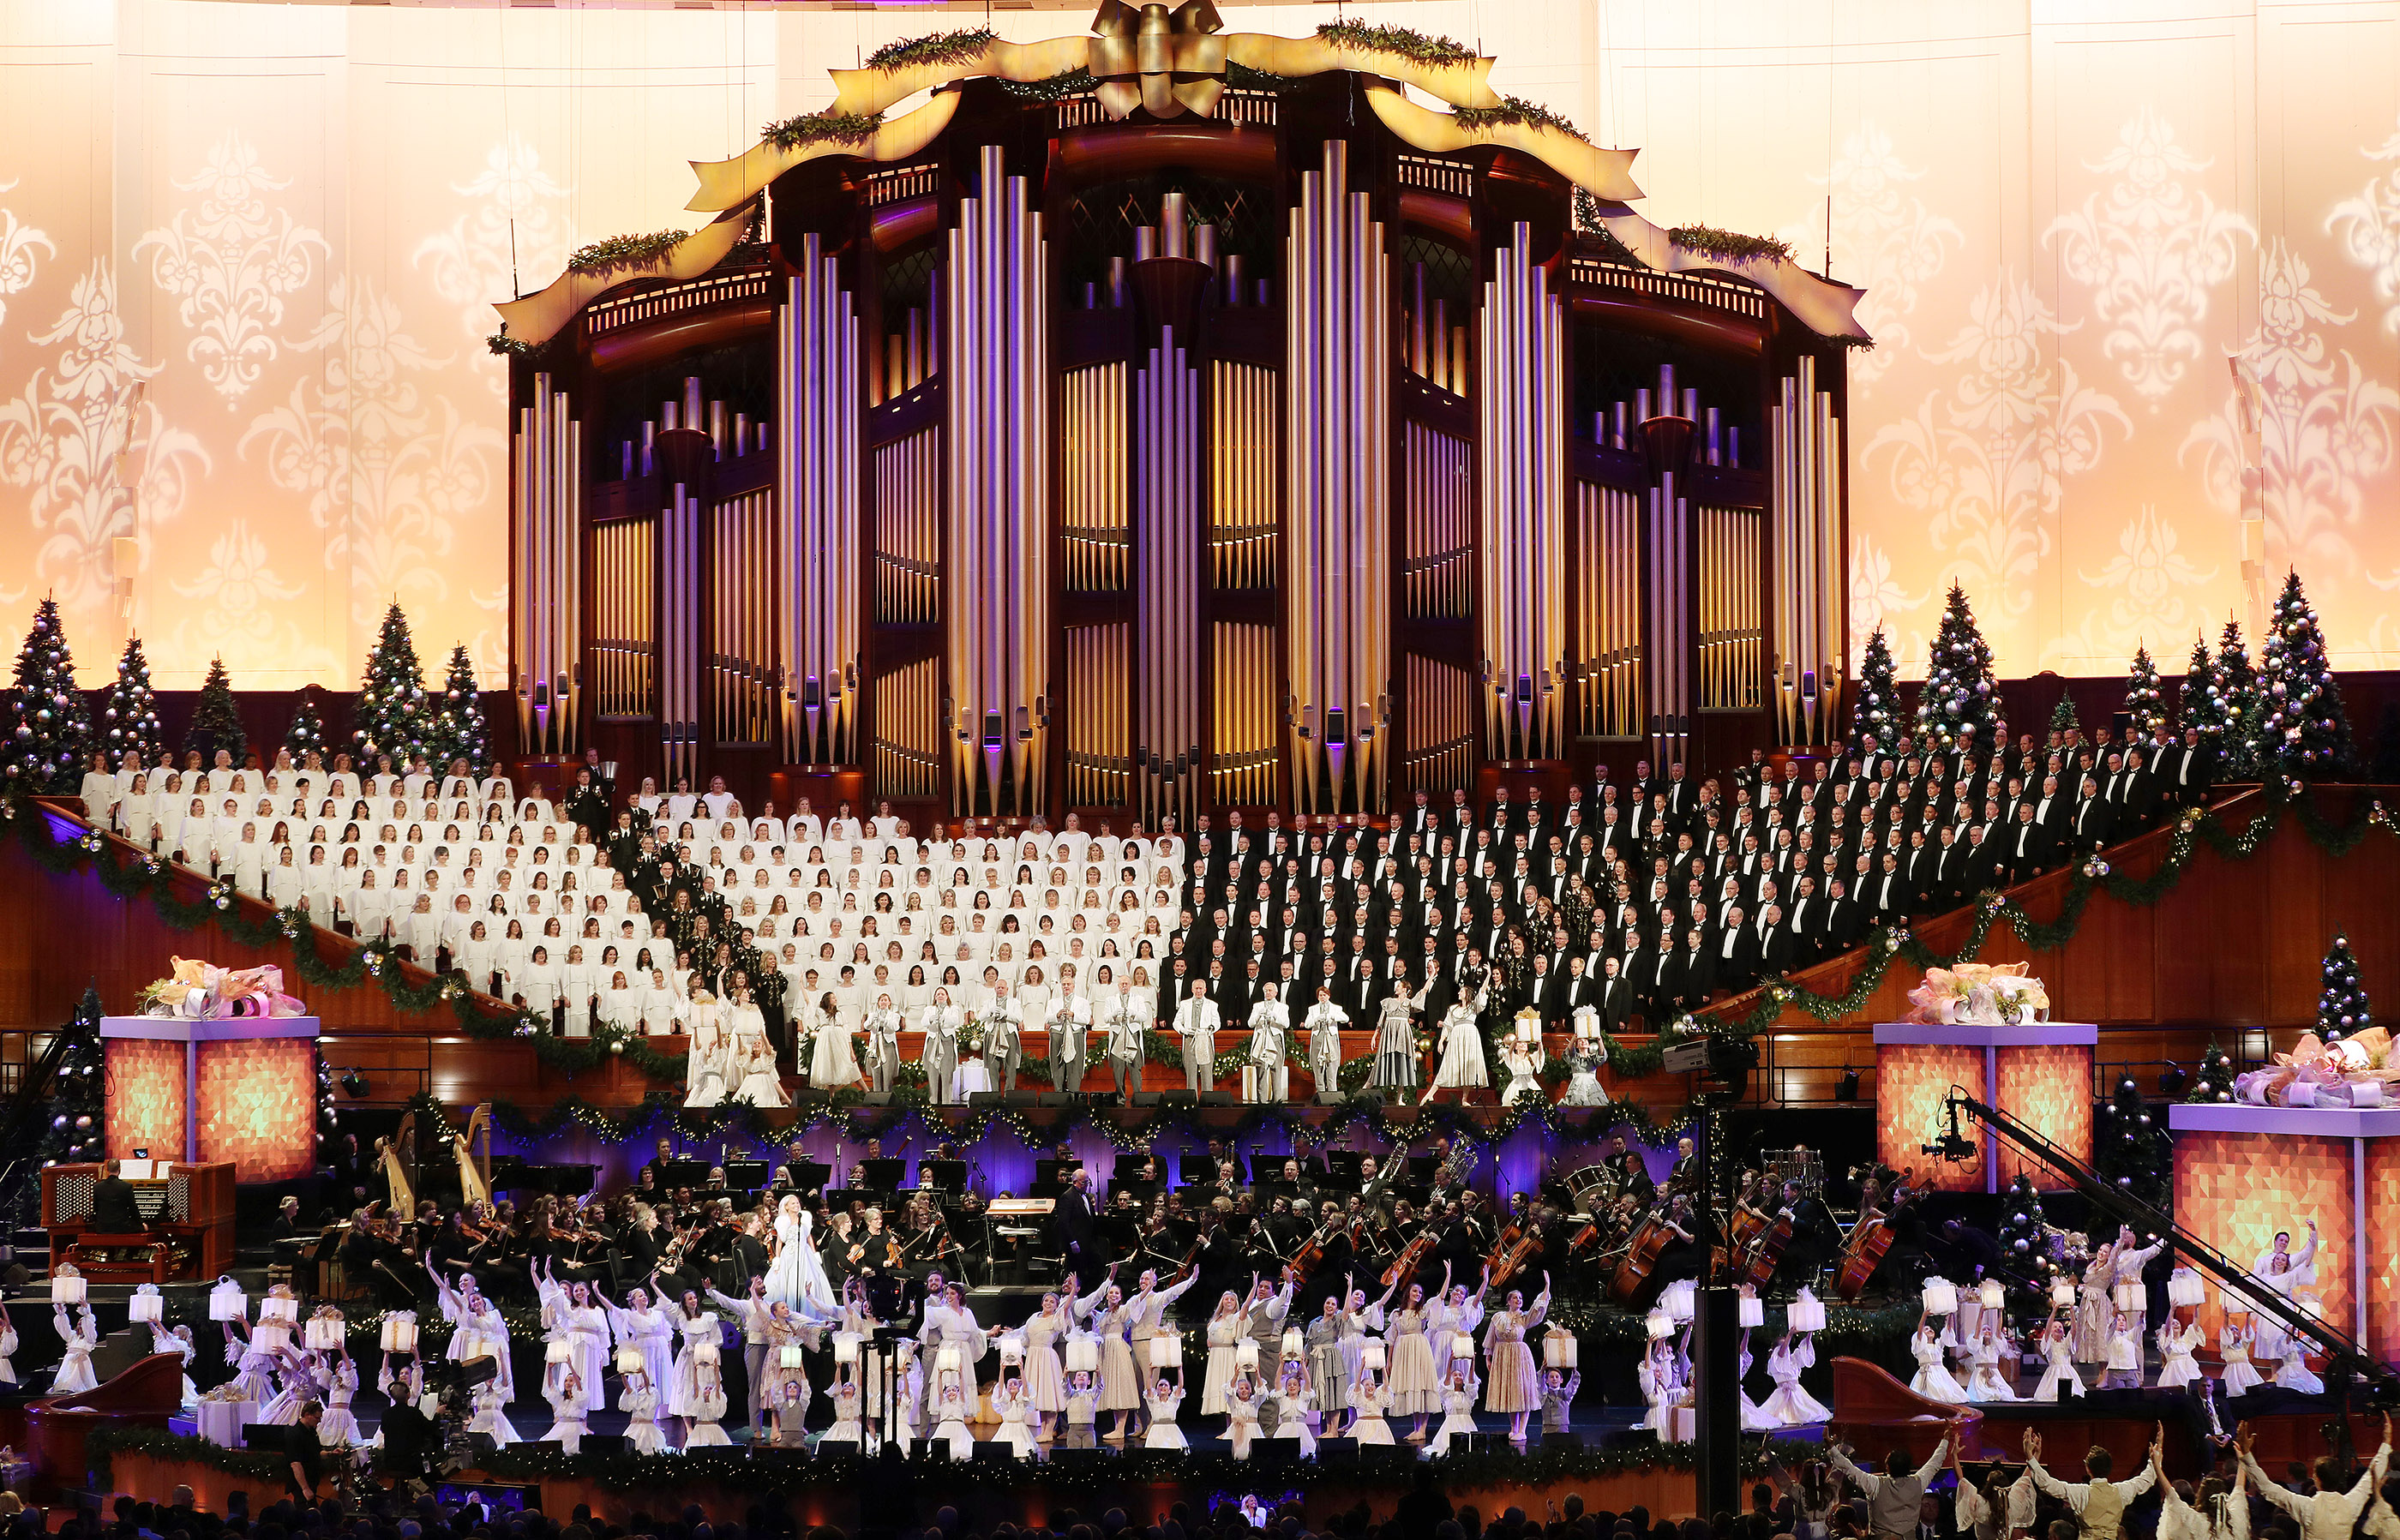 Tab Choir Christmas Concert 2020 Here's how to get tickets to the 2019 Tabernacle Choir Christmas